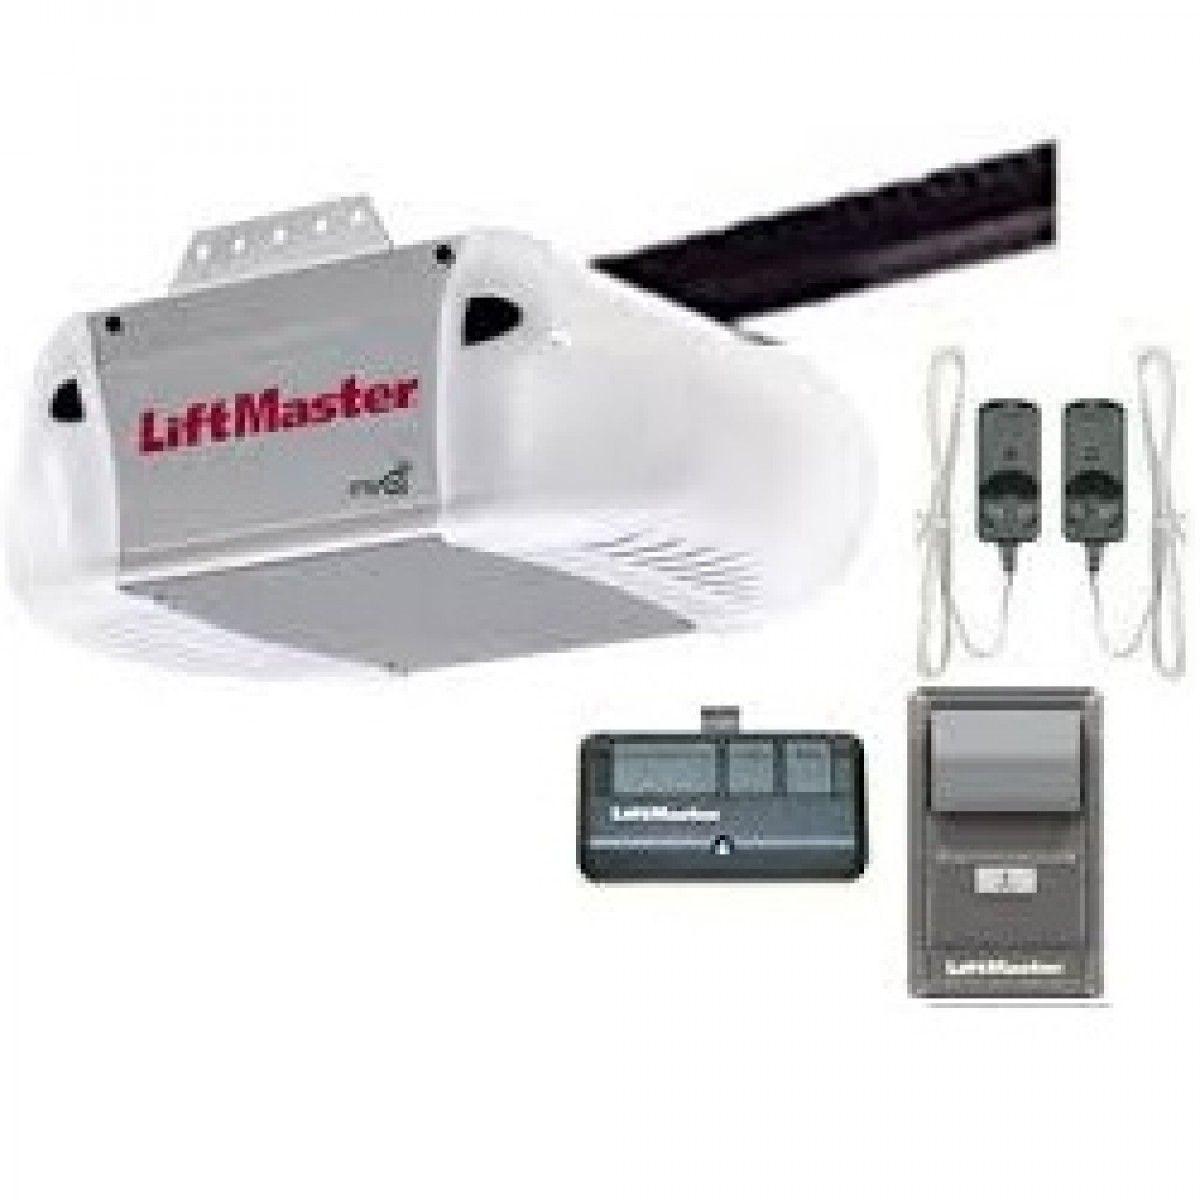 Liftmaster 8355 Security 2 0 Ac Belt Drive Liftmaster Liftmaster Garage Door Opener Garage Door Opener